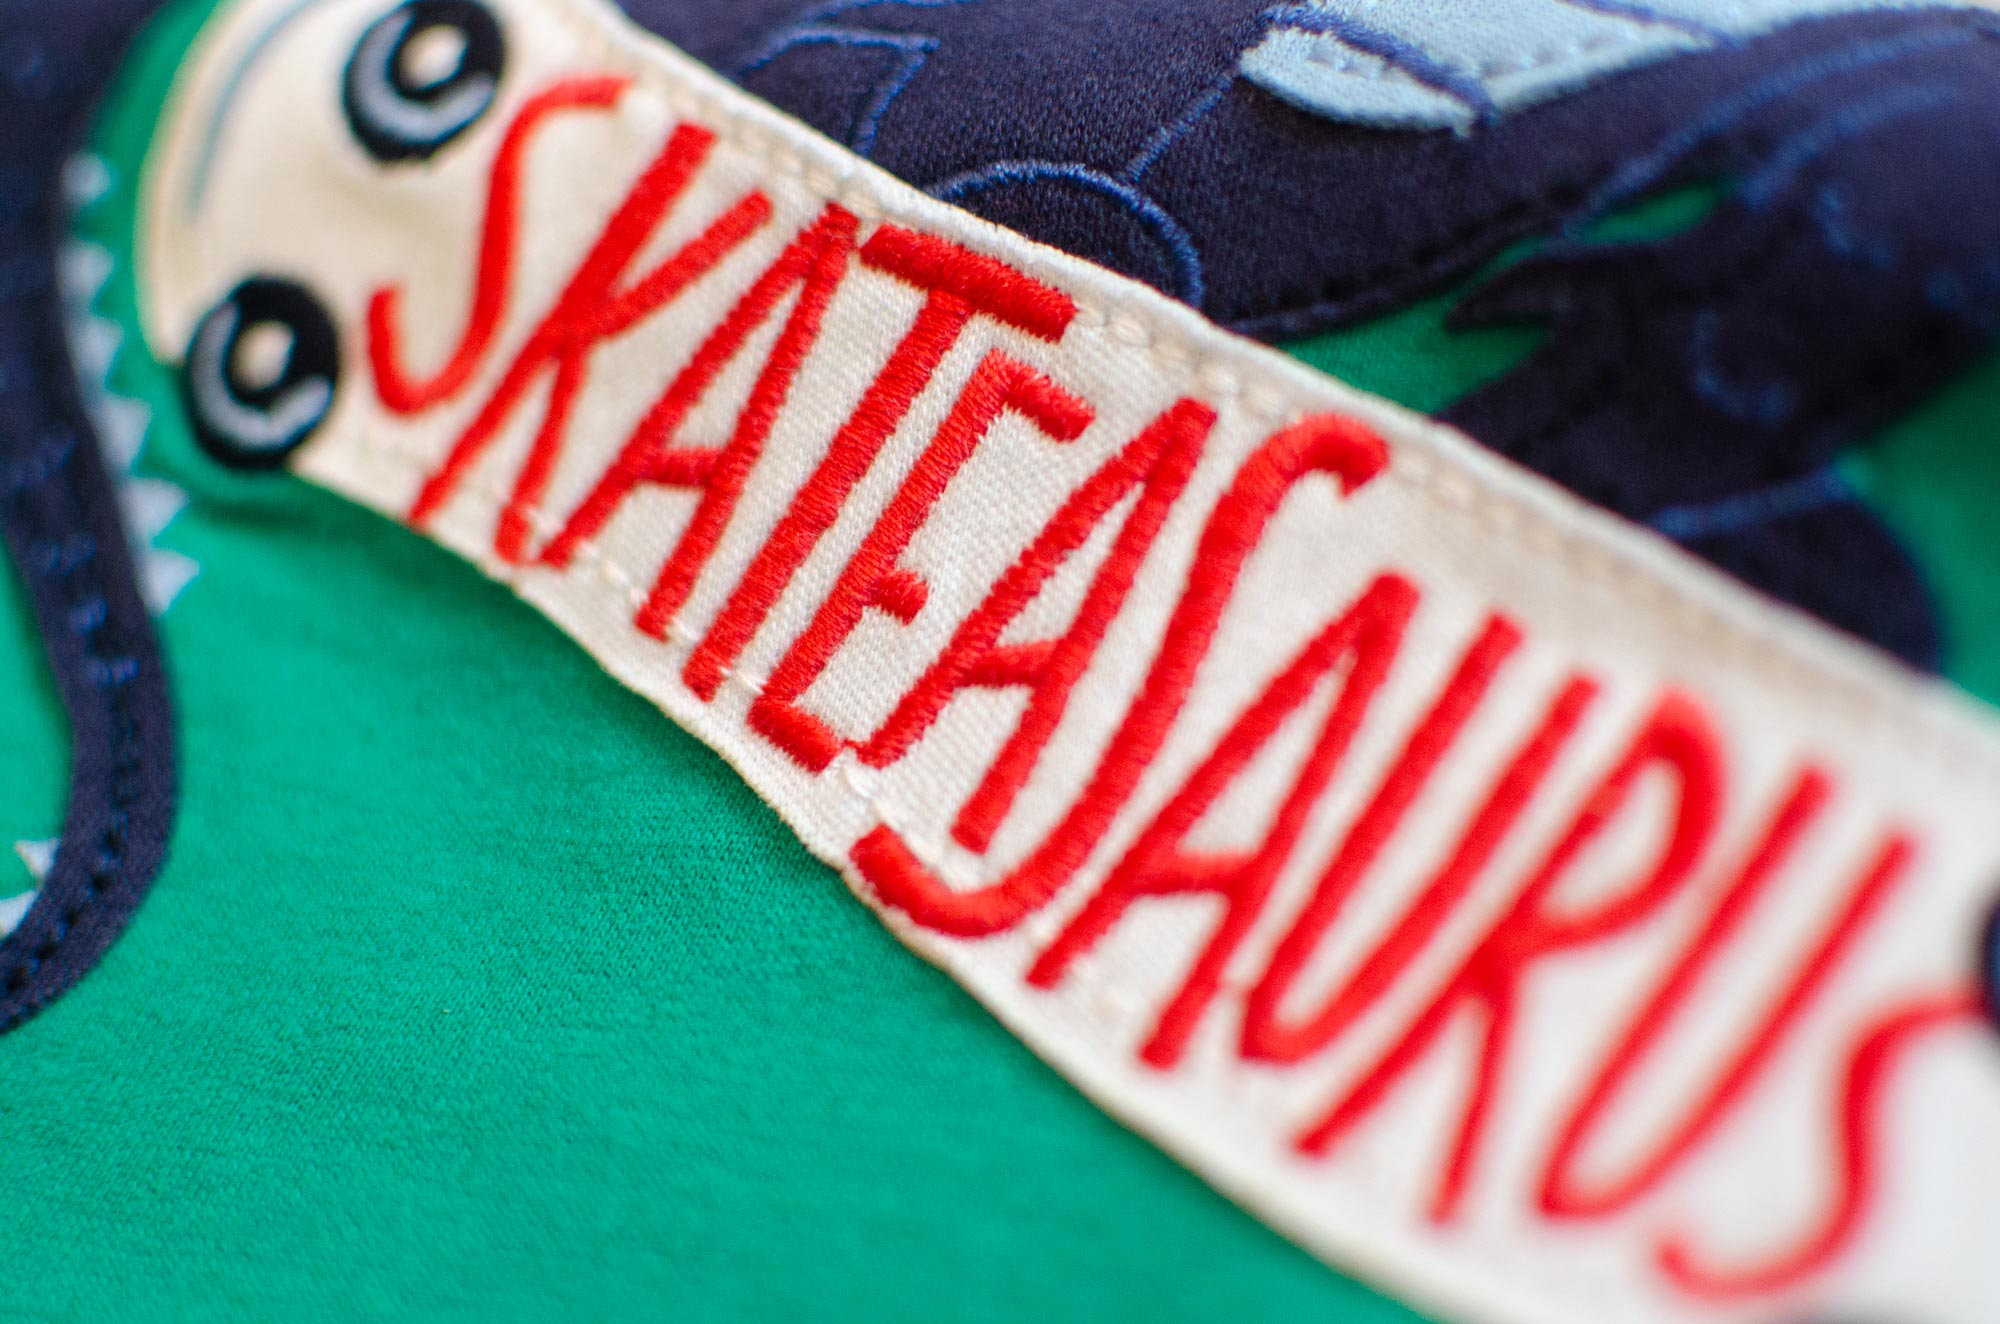 Skateasaurus embroidered letters for Joules by Elly Jahnz